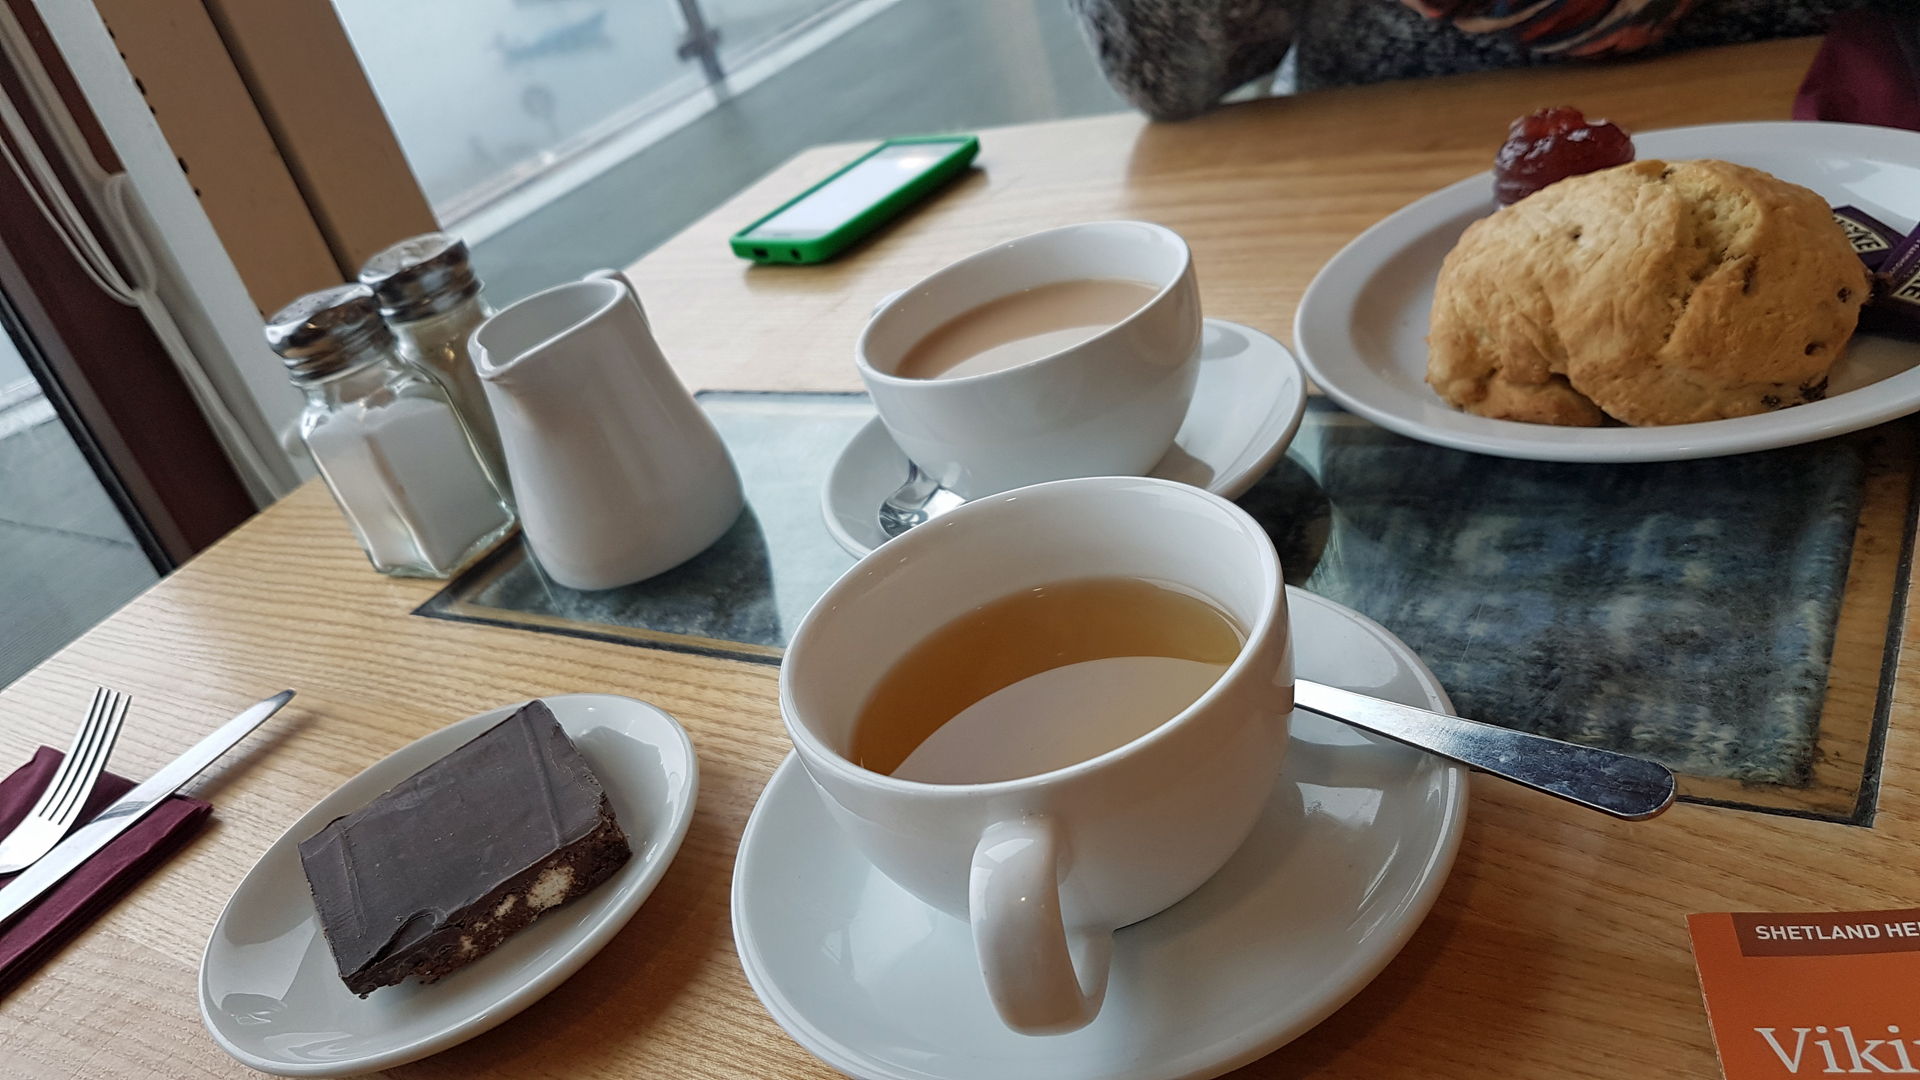 Tea and cakes at Hay's Dock Café Restaurant located in Shetland Museum and Archives